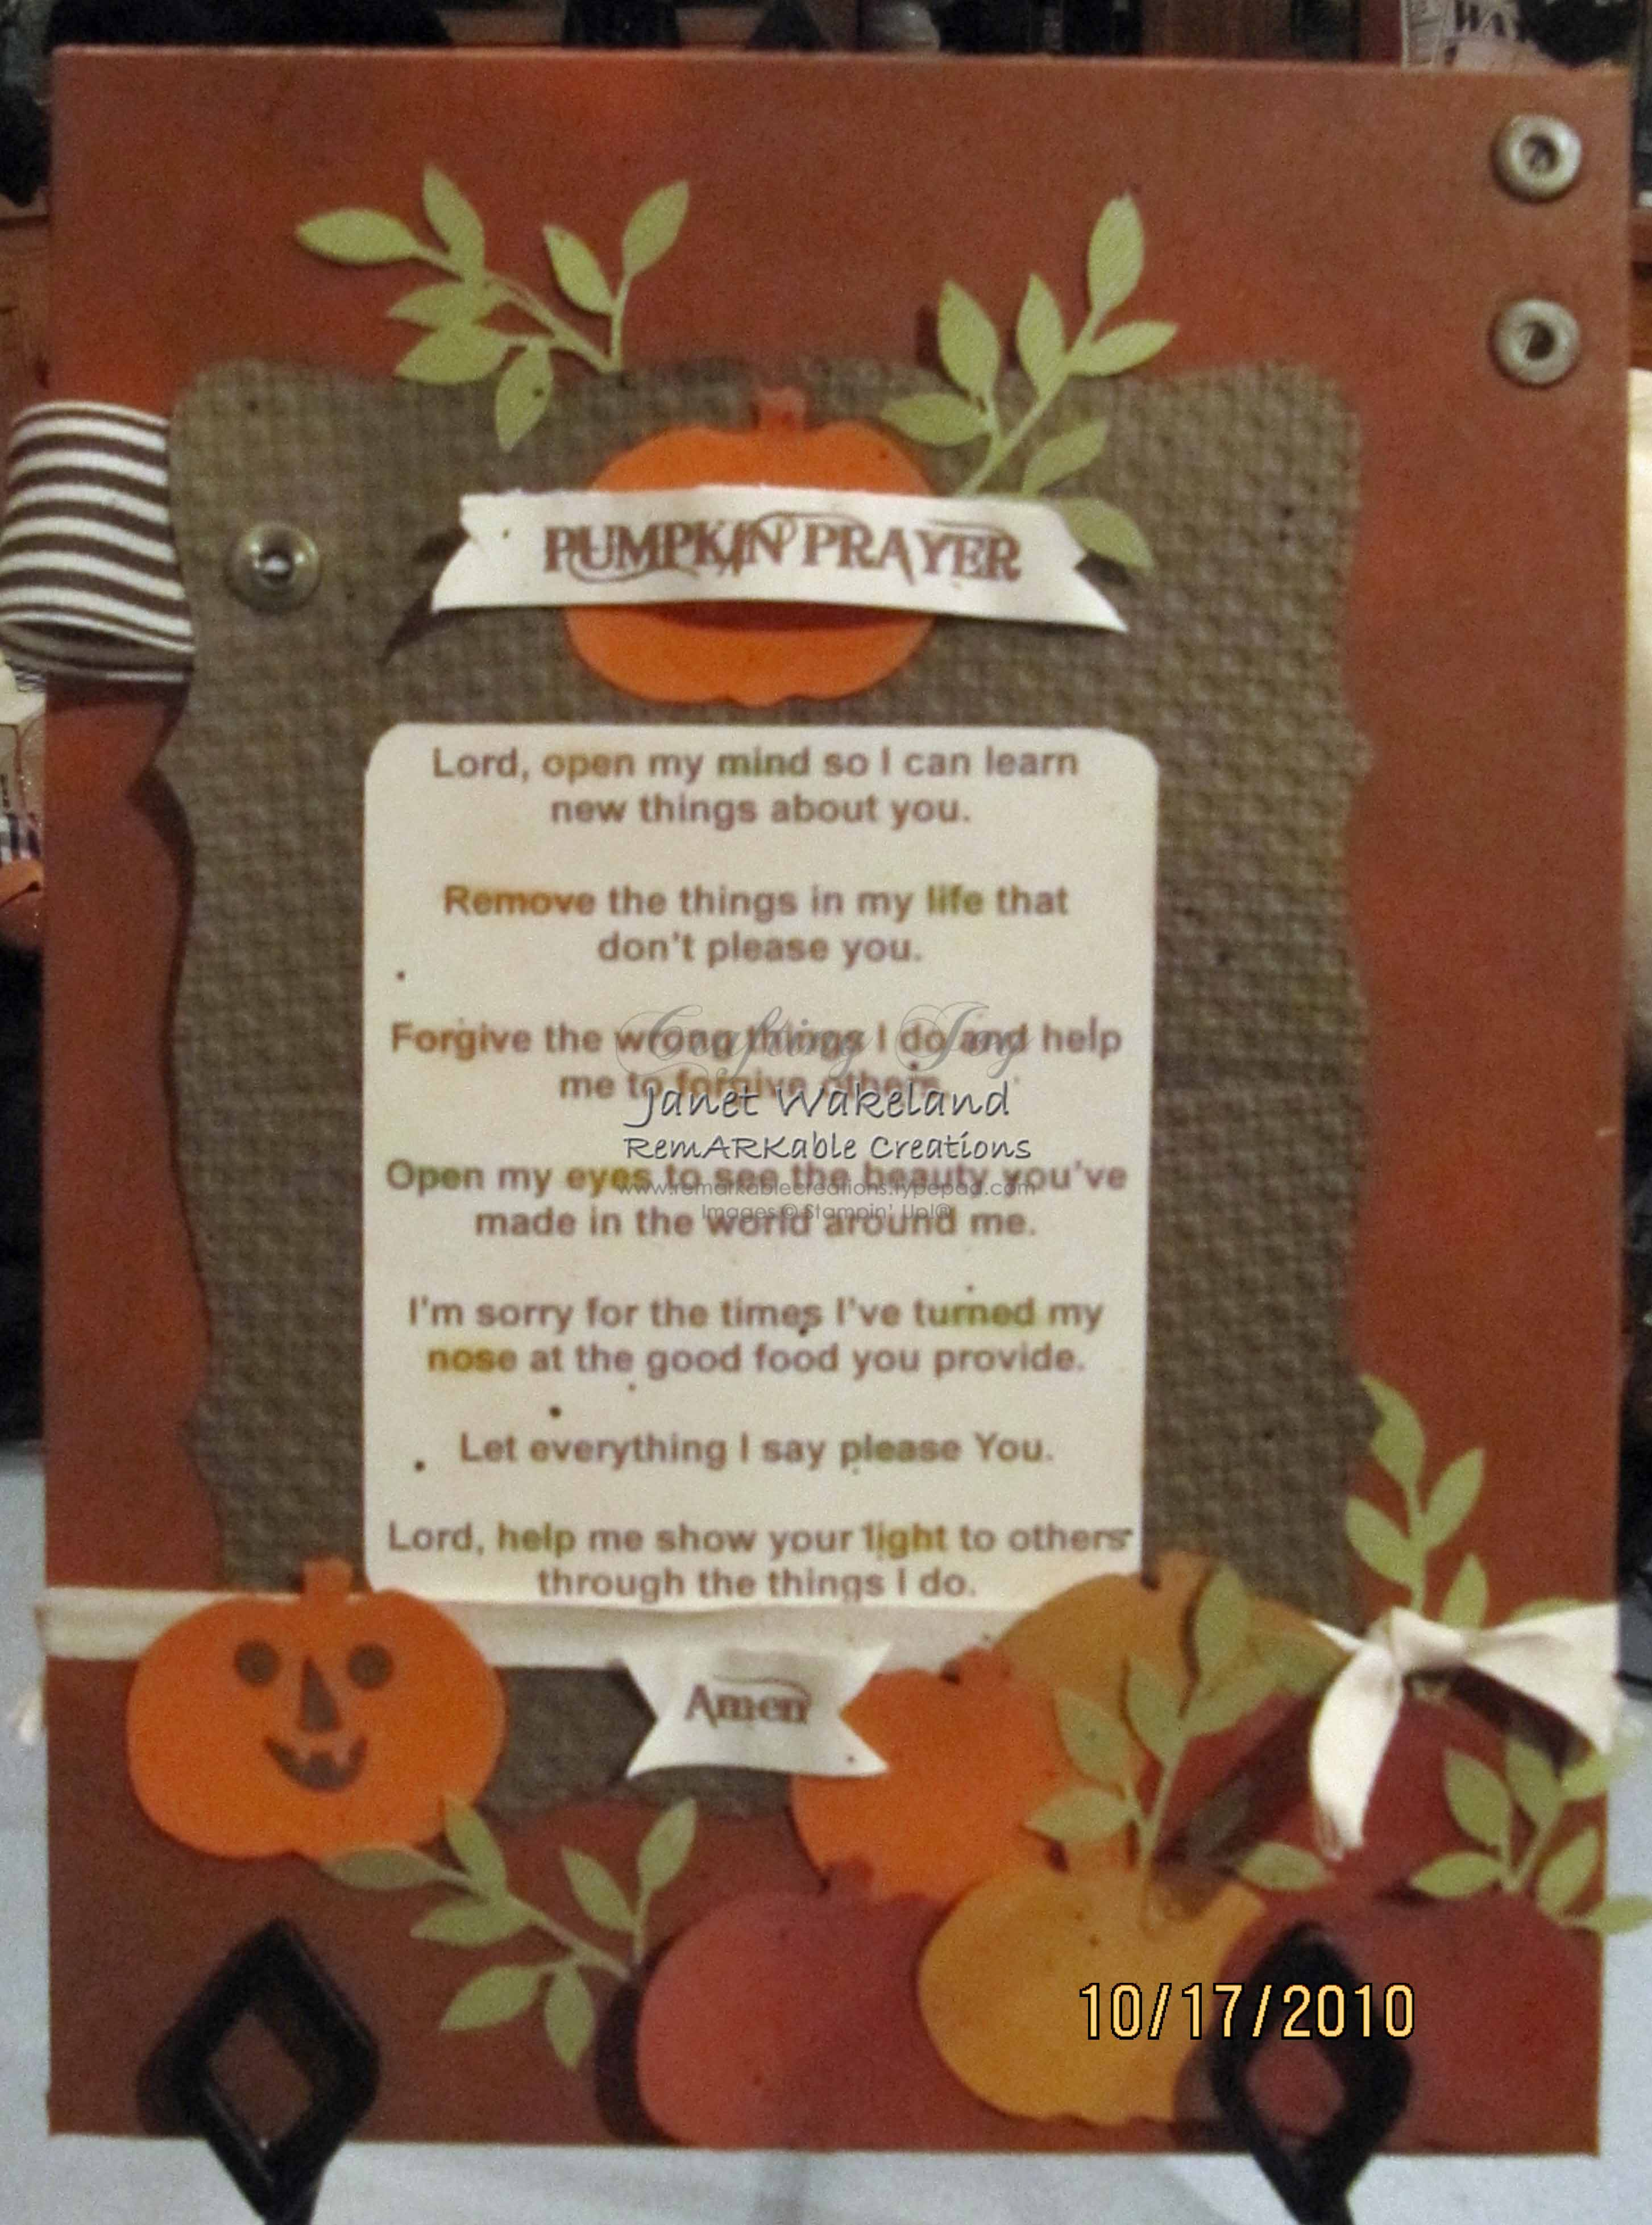 photo regarding Pumpkin Prayer Printable titled Pumpkin Prayer - Outstanding Creations